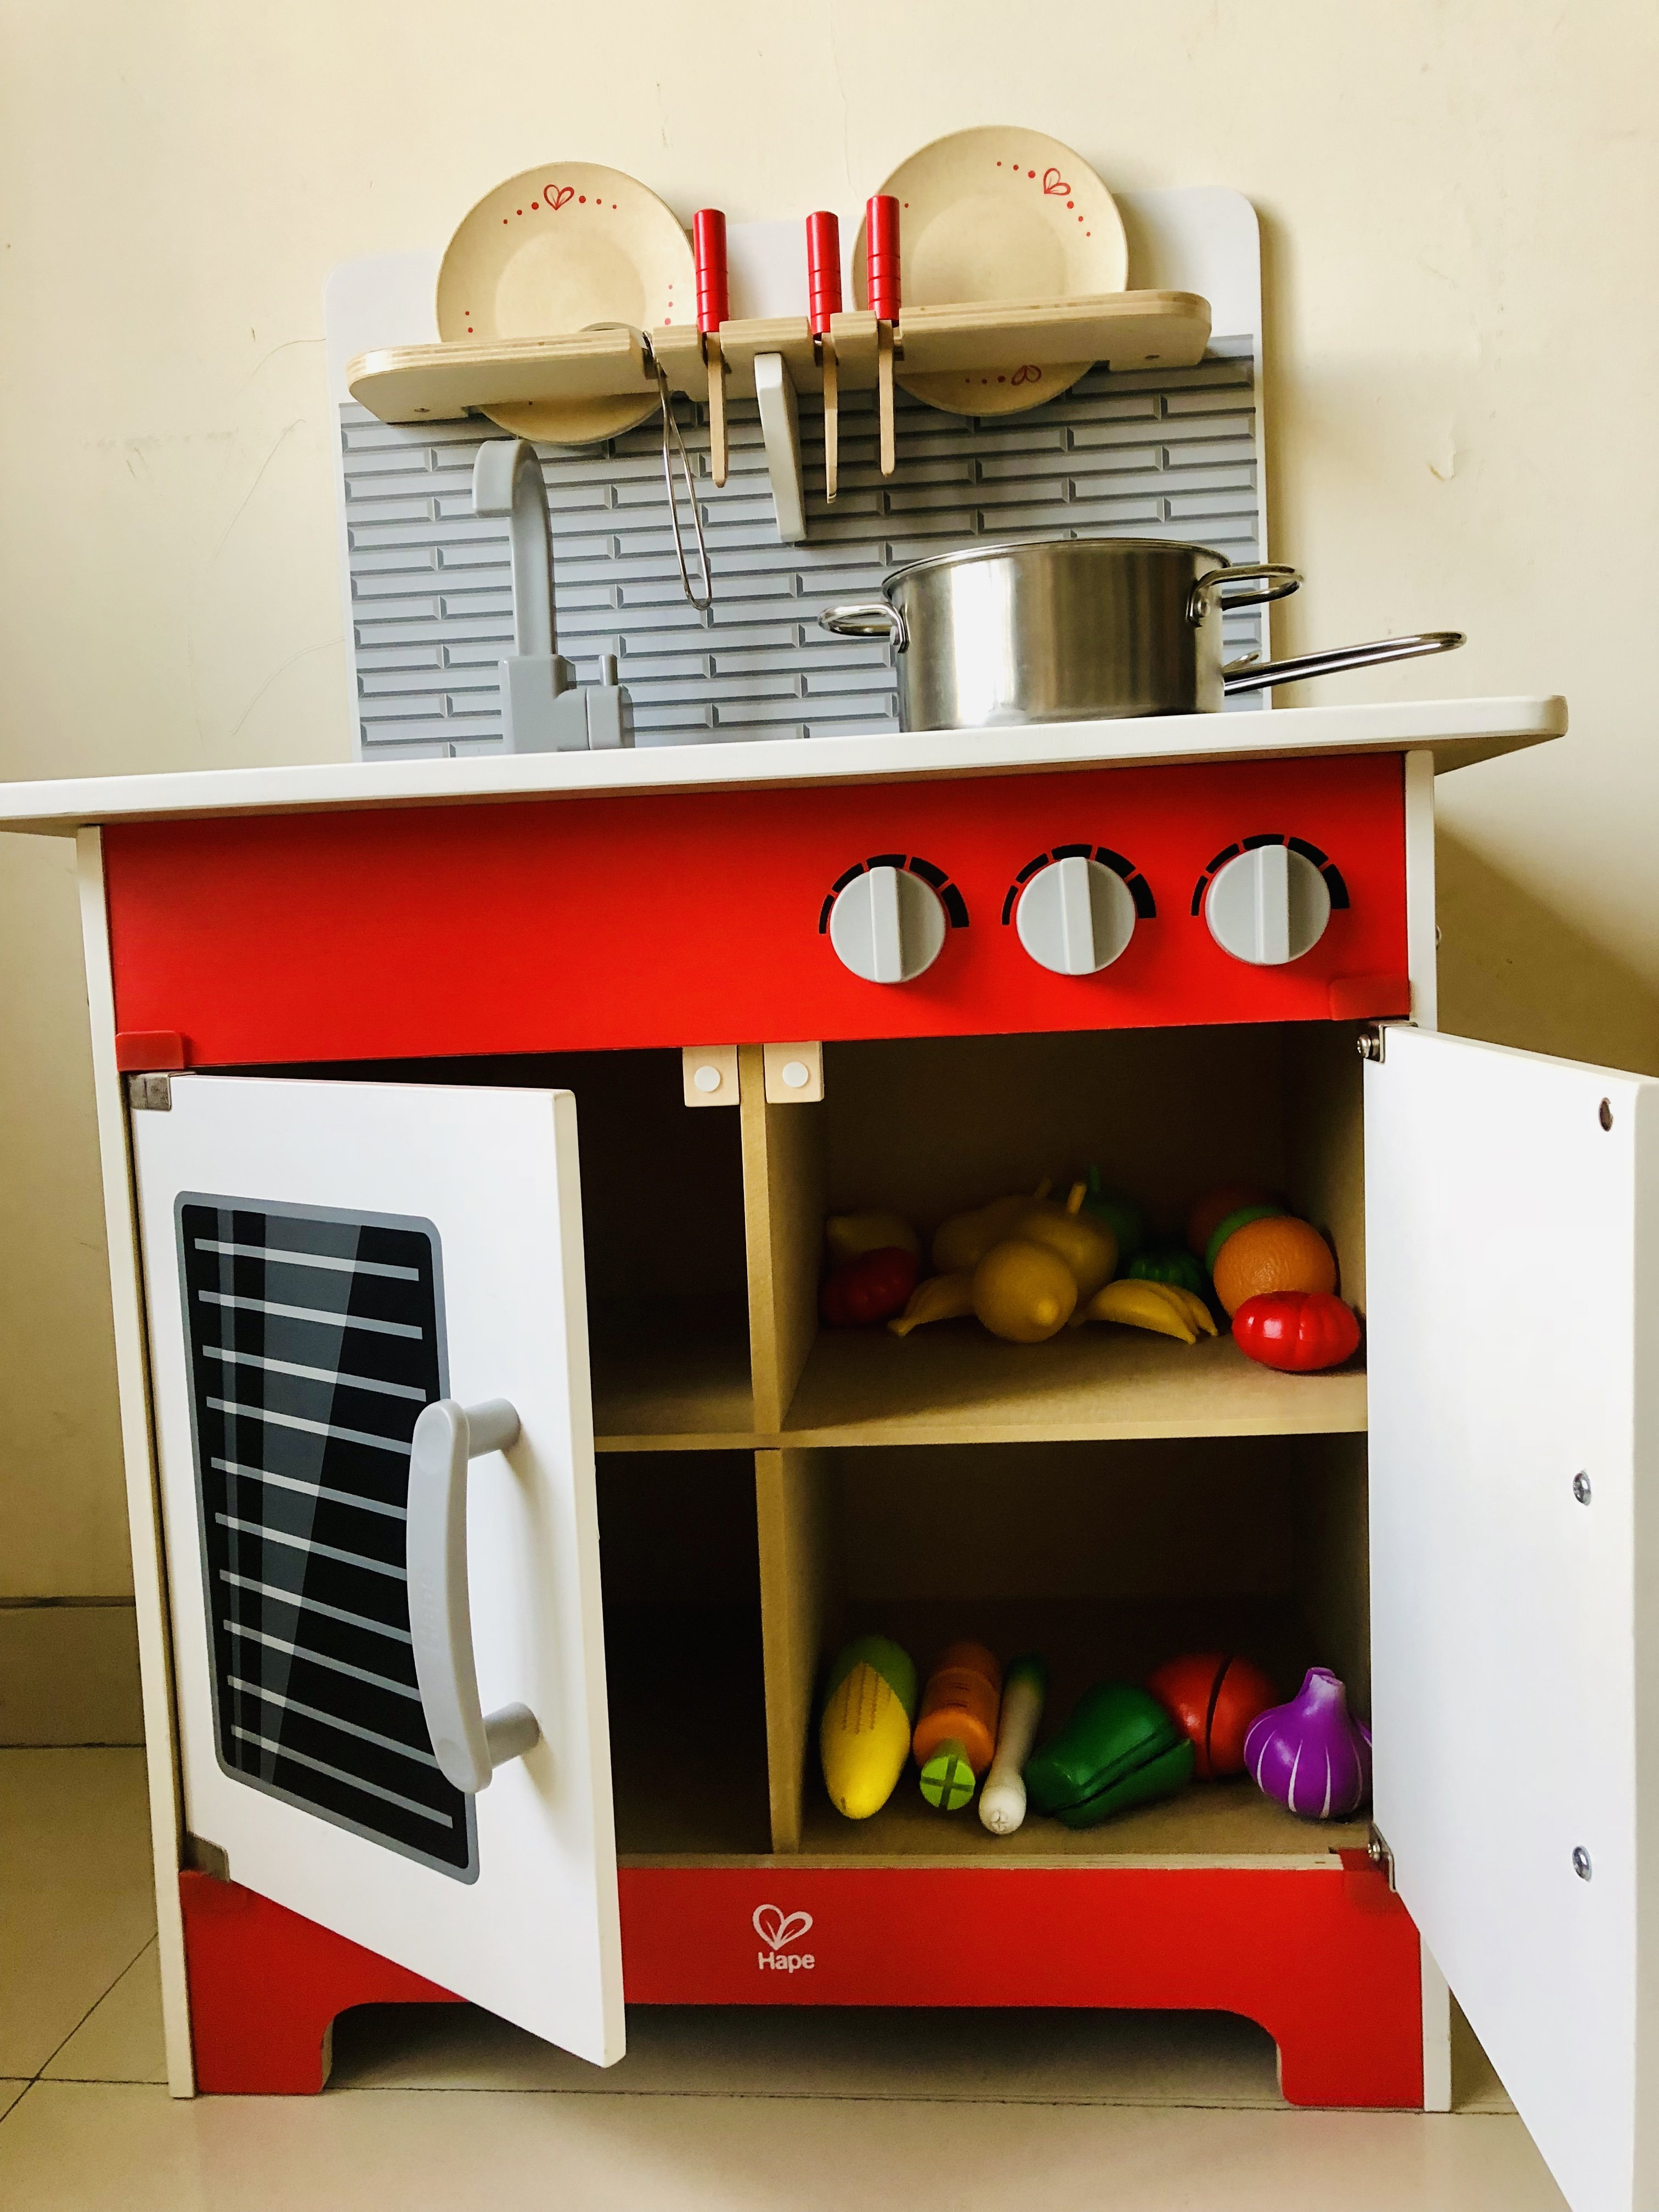 Hape play kitchen for kids